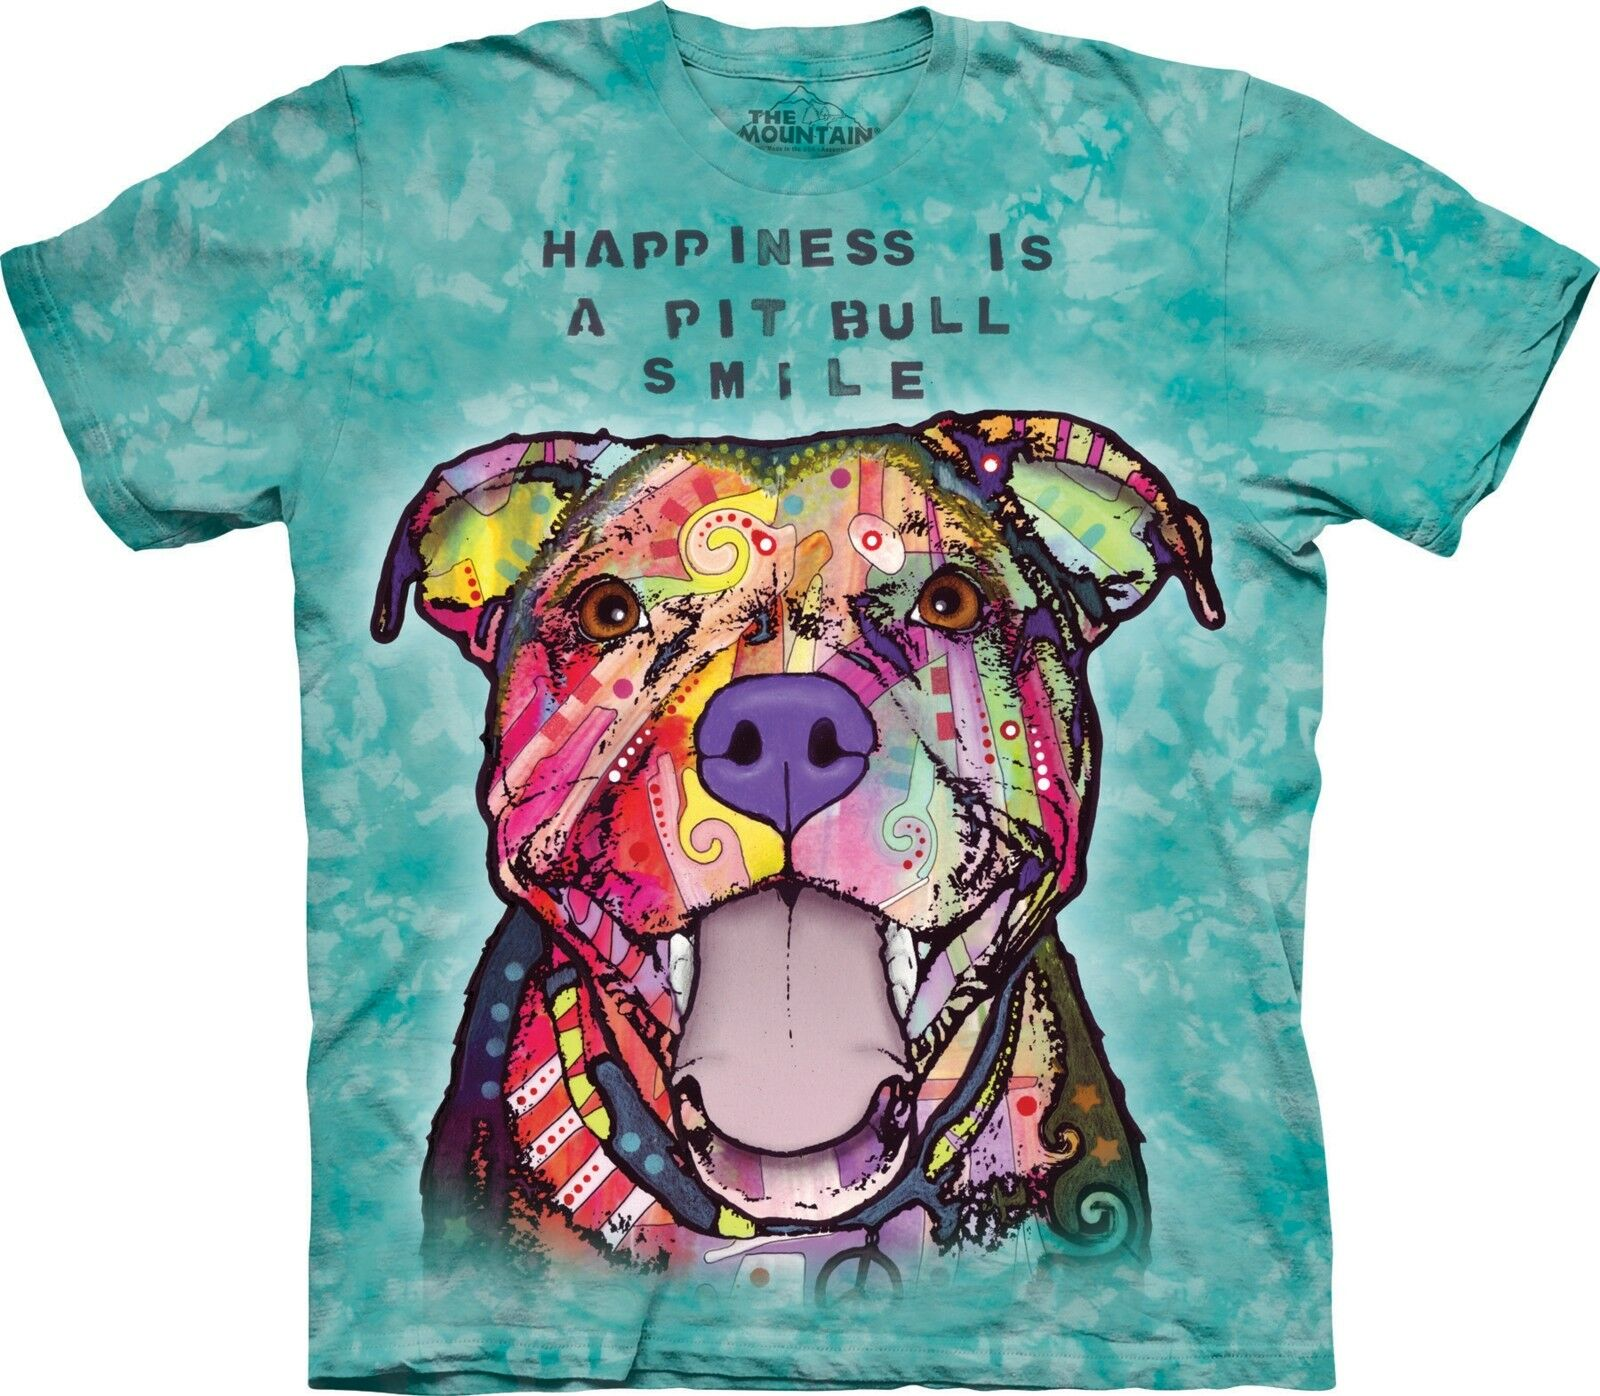 Pit Bull Smile T Shirt Adult Unisex The Mountain